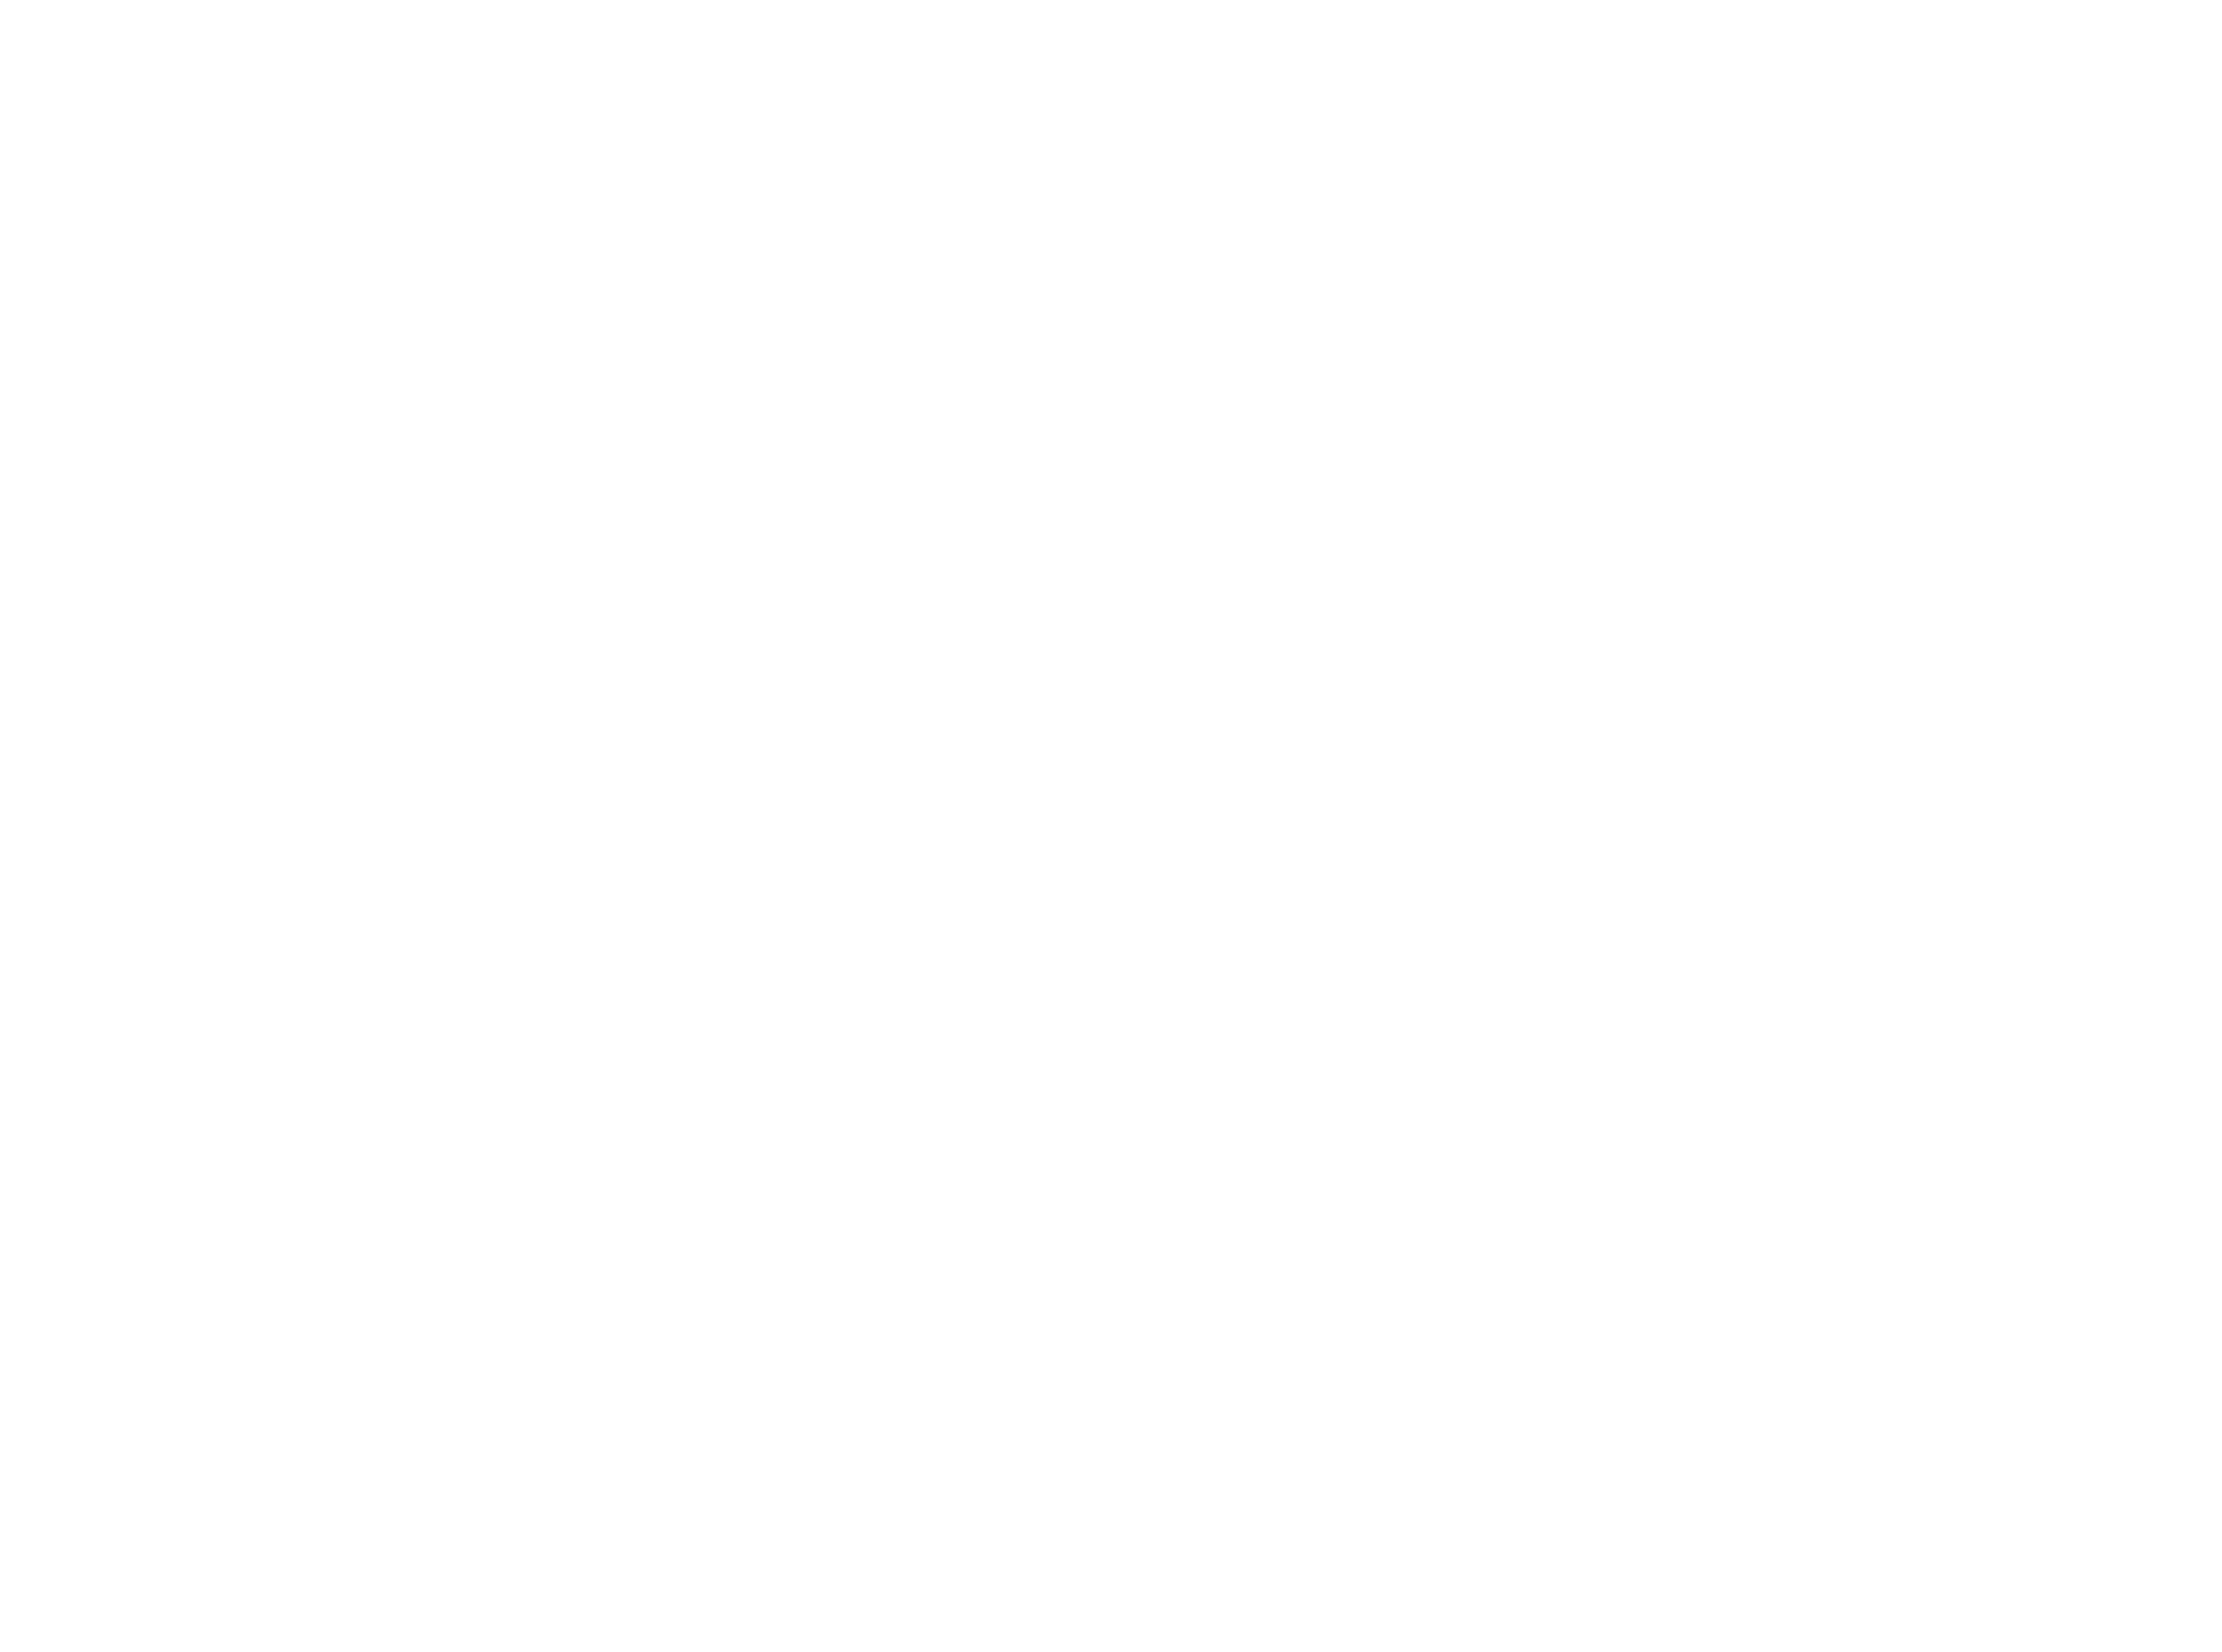 cine wedding product-01-01-01.png